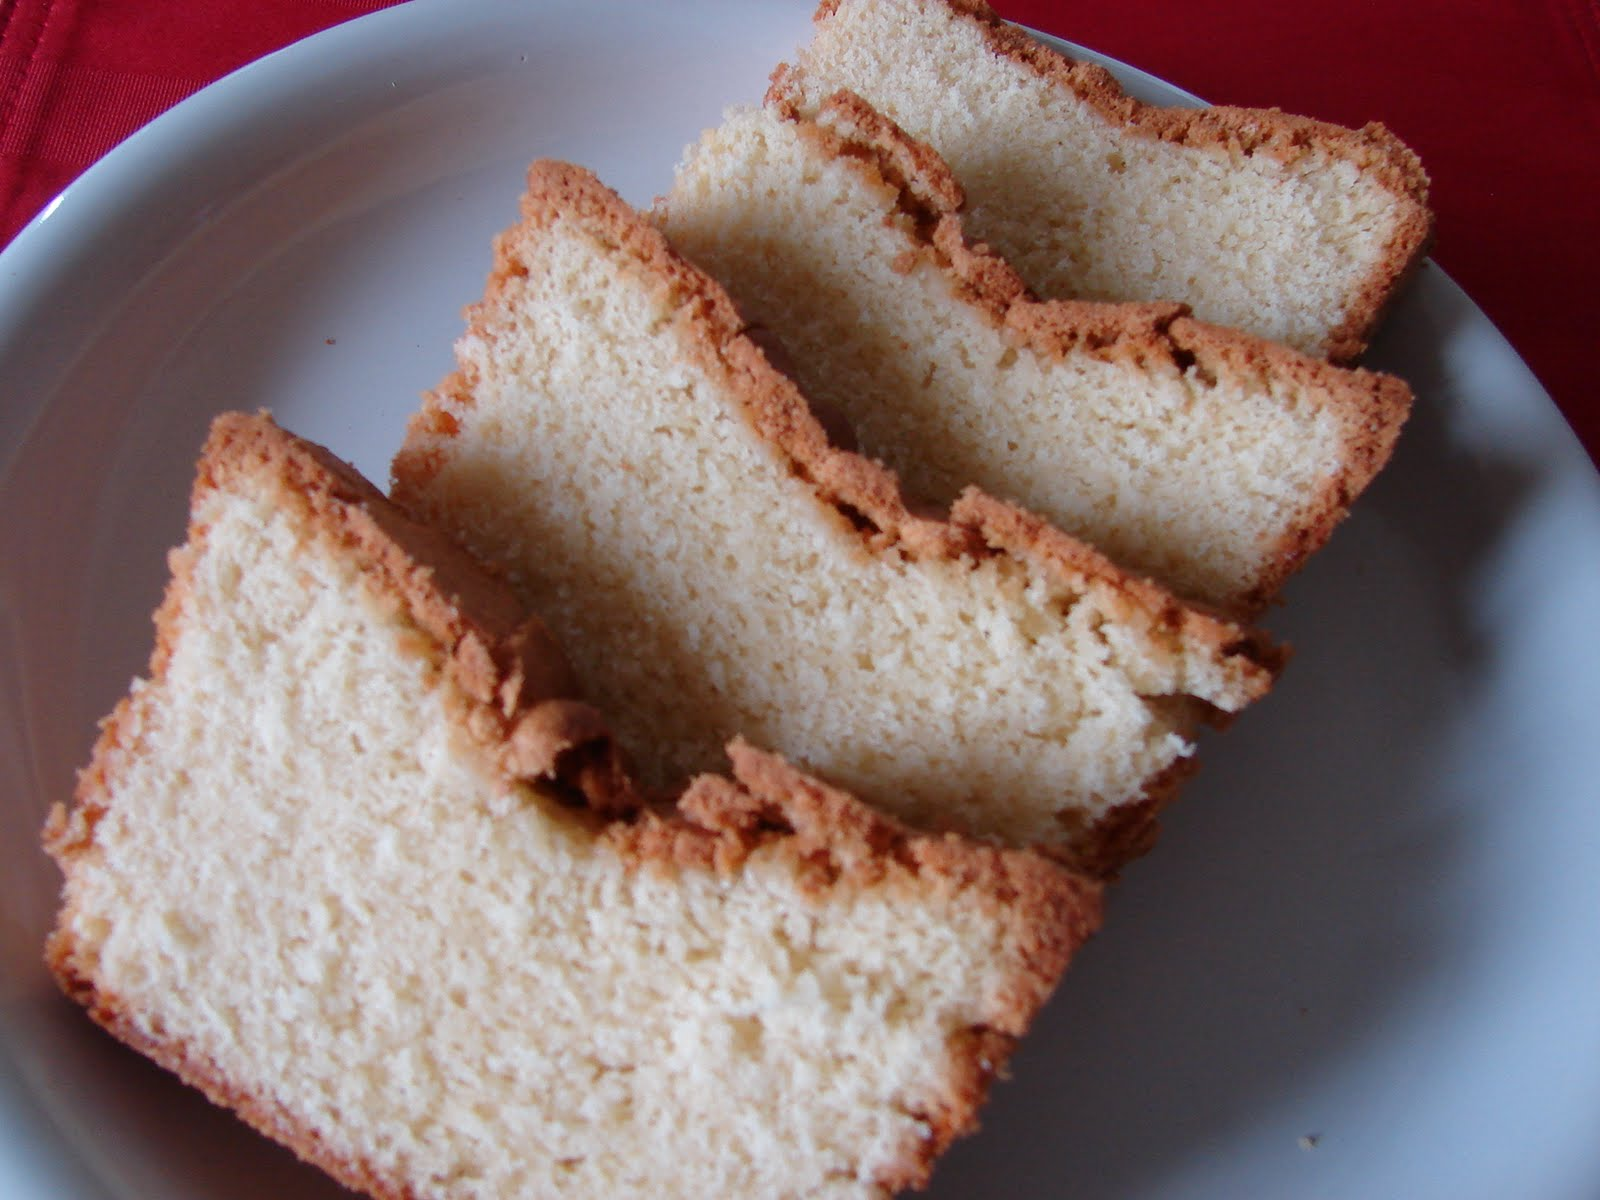 Pin Five Flavor Pound Cake With Cream Cheese Icing Cake On